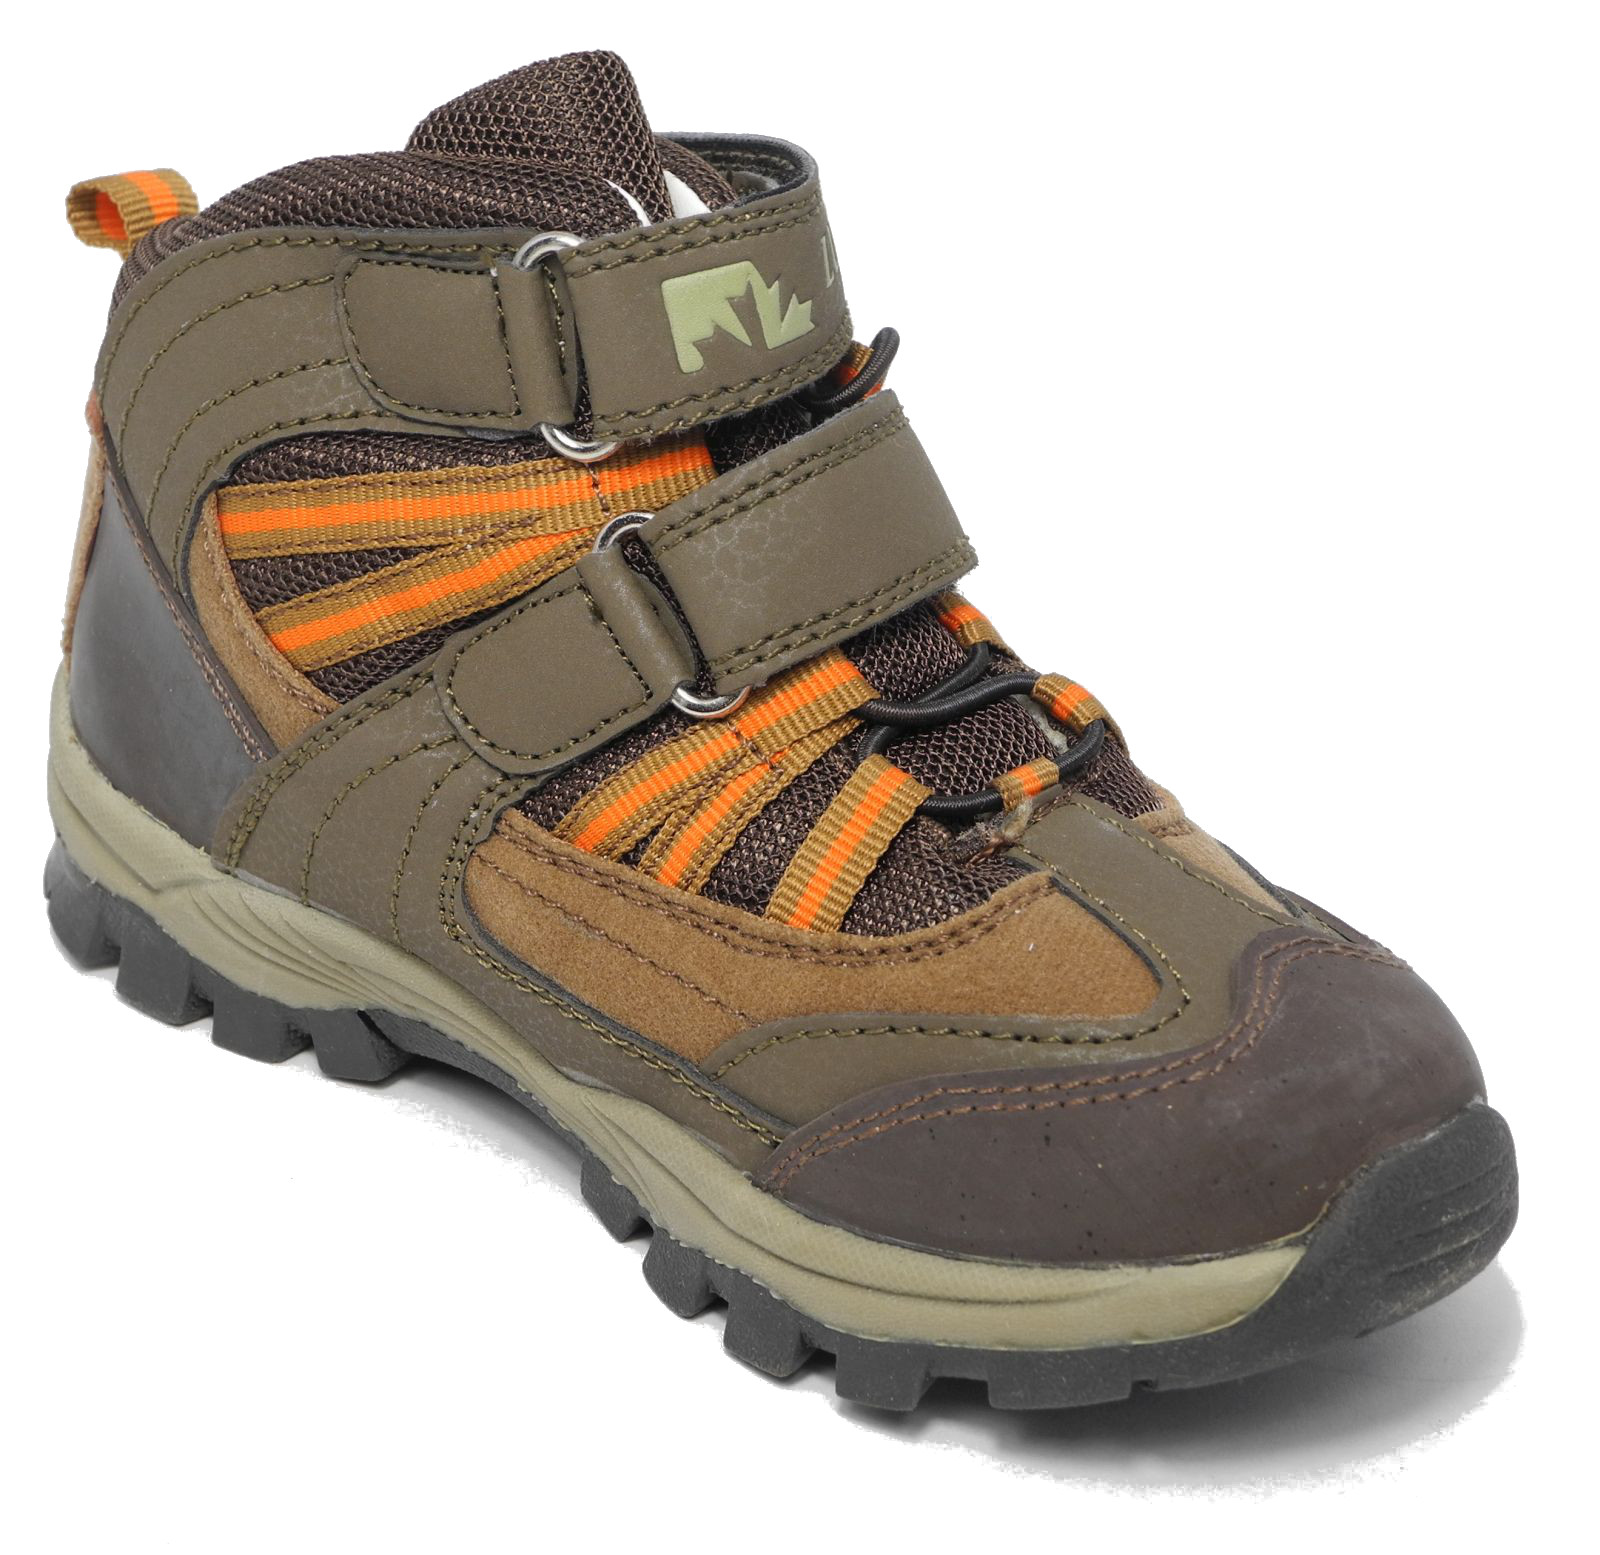 Lumberjack Shoes Uk